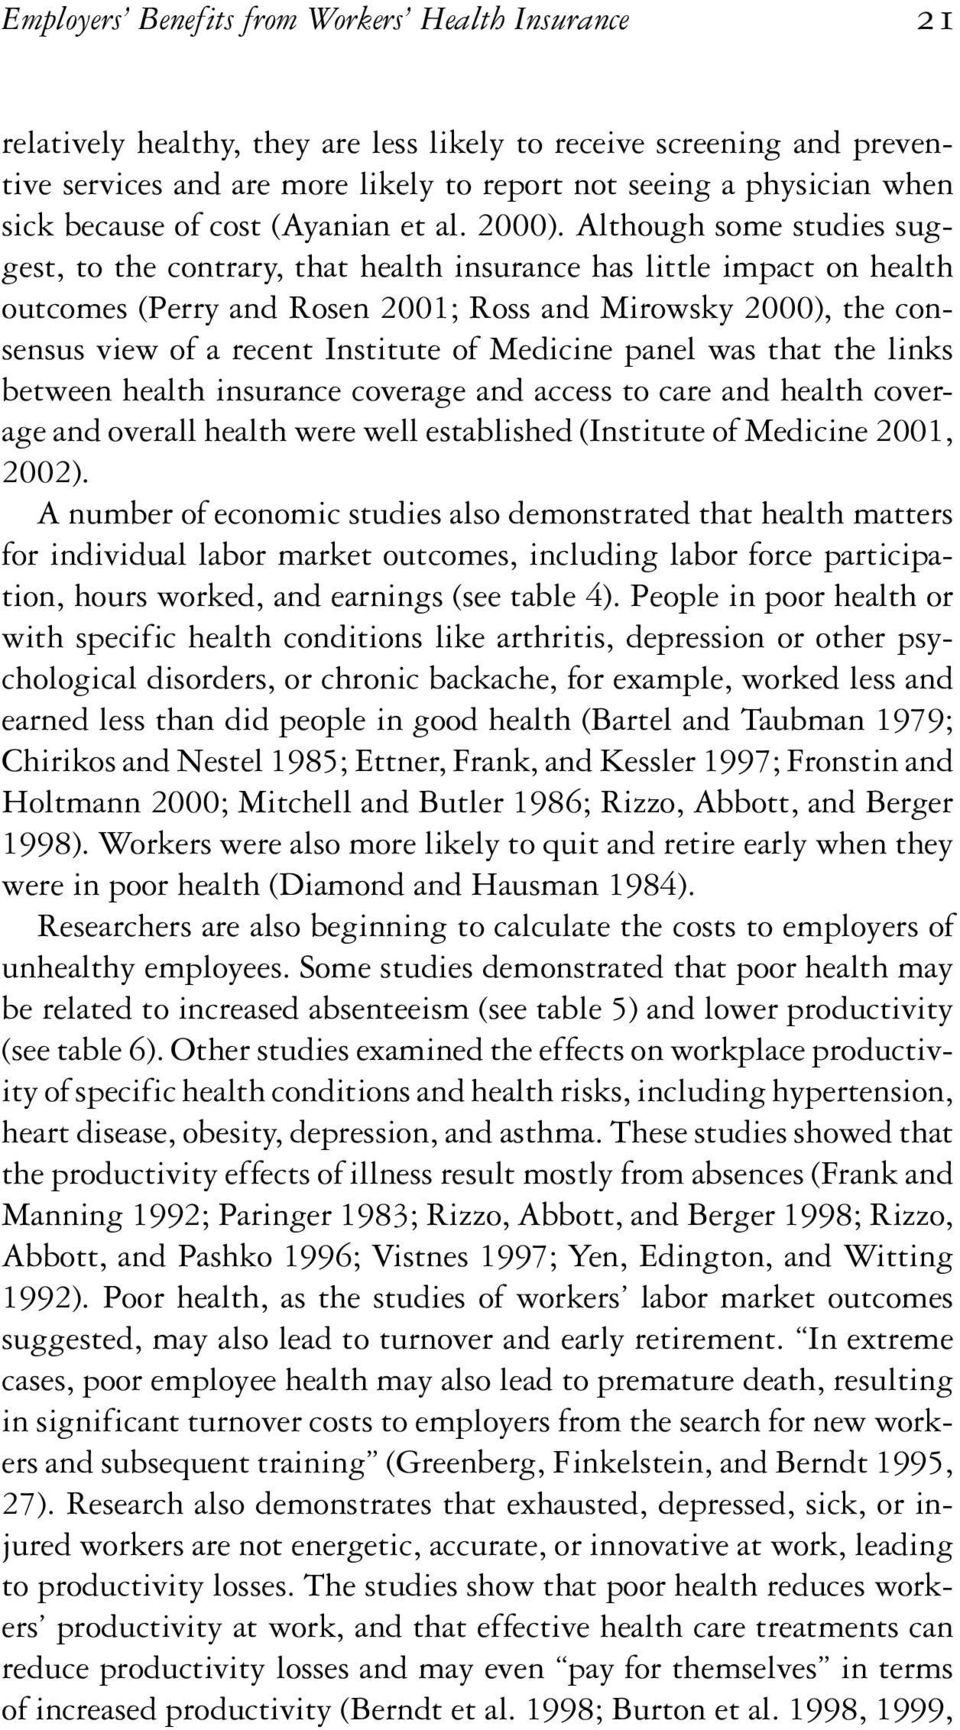 Although some studies suggest, to the contrary, that health insurance has little impact on health outcomes (Perry and Rosen 2001; Ross and Mirowsky 2000), the consensus view of a recent Institute of